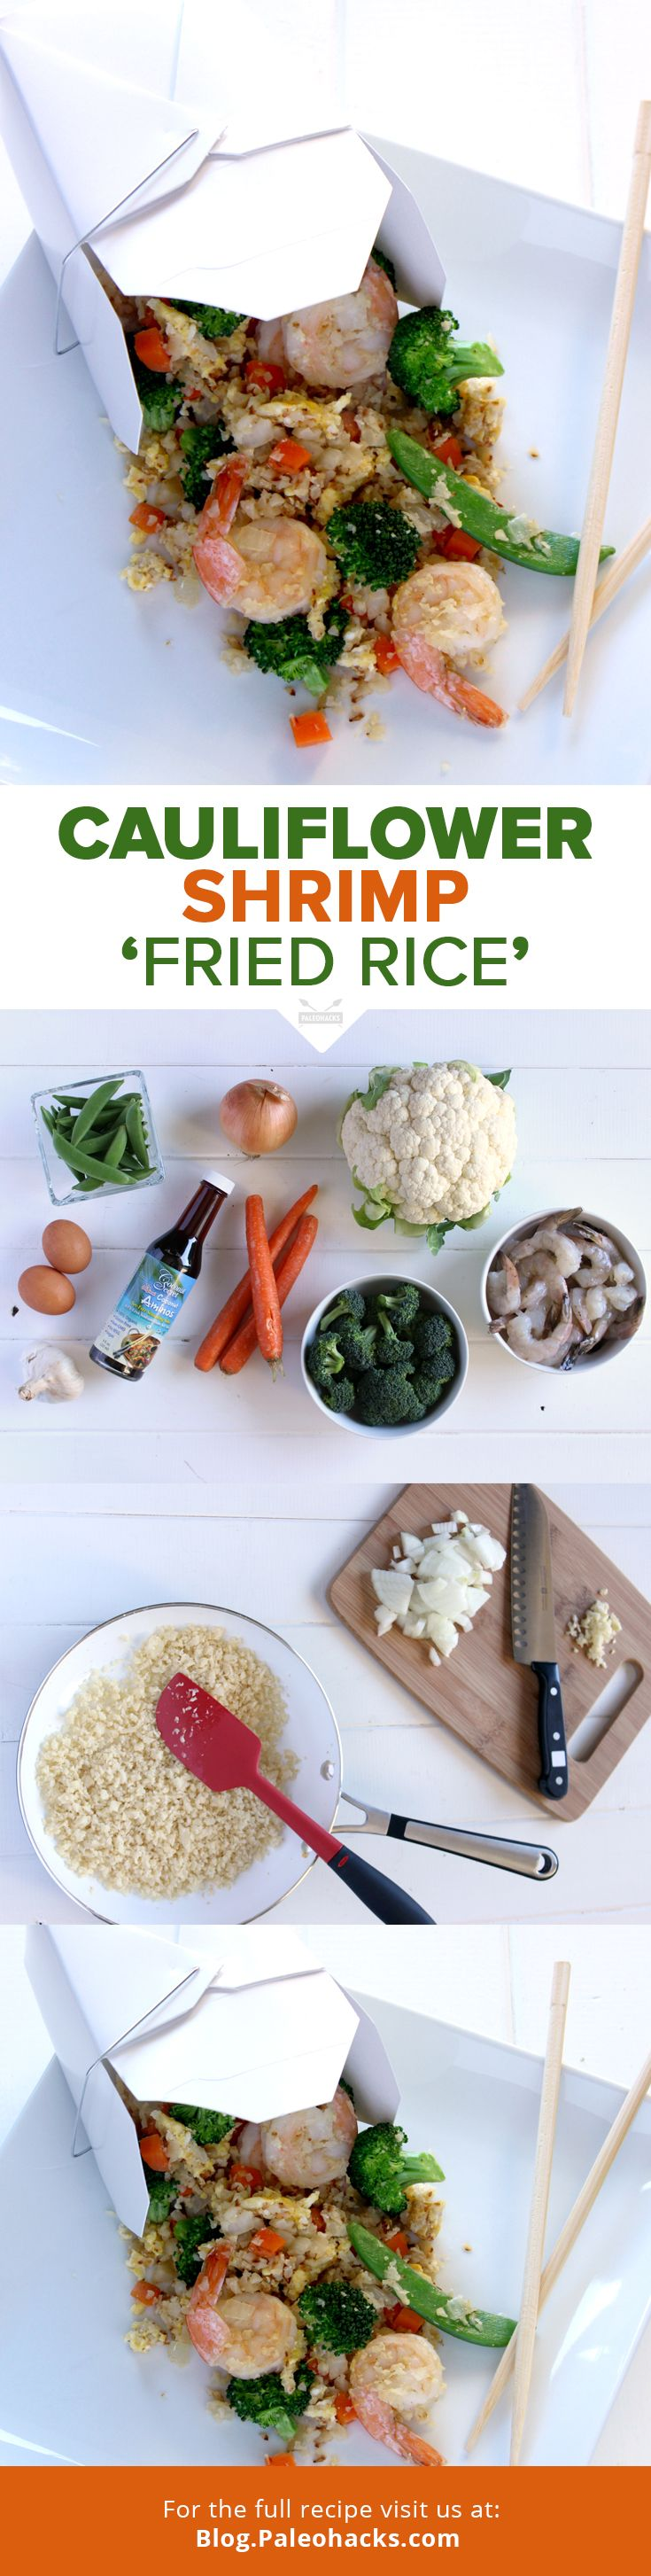 Healthy Cauliflower Rice Fried With Shrimp and Veggies, Ready in Just 20 Minutes!